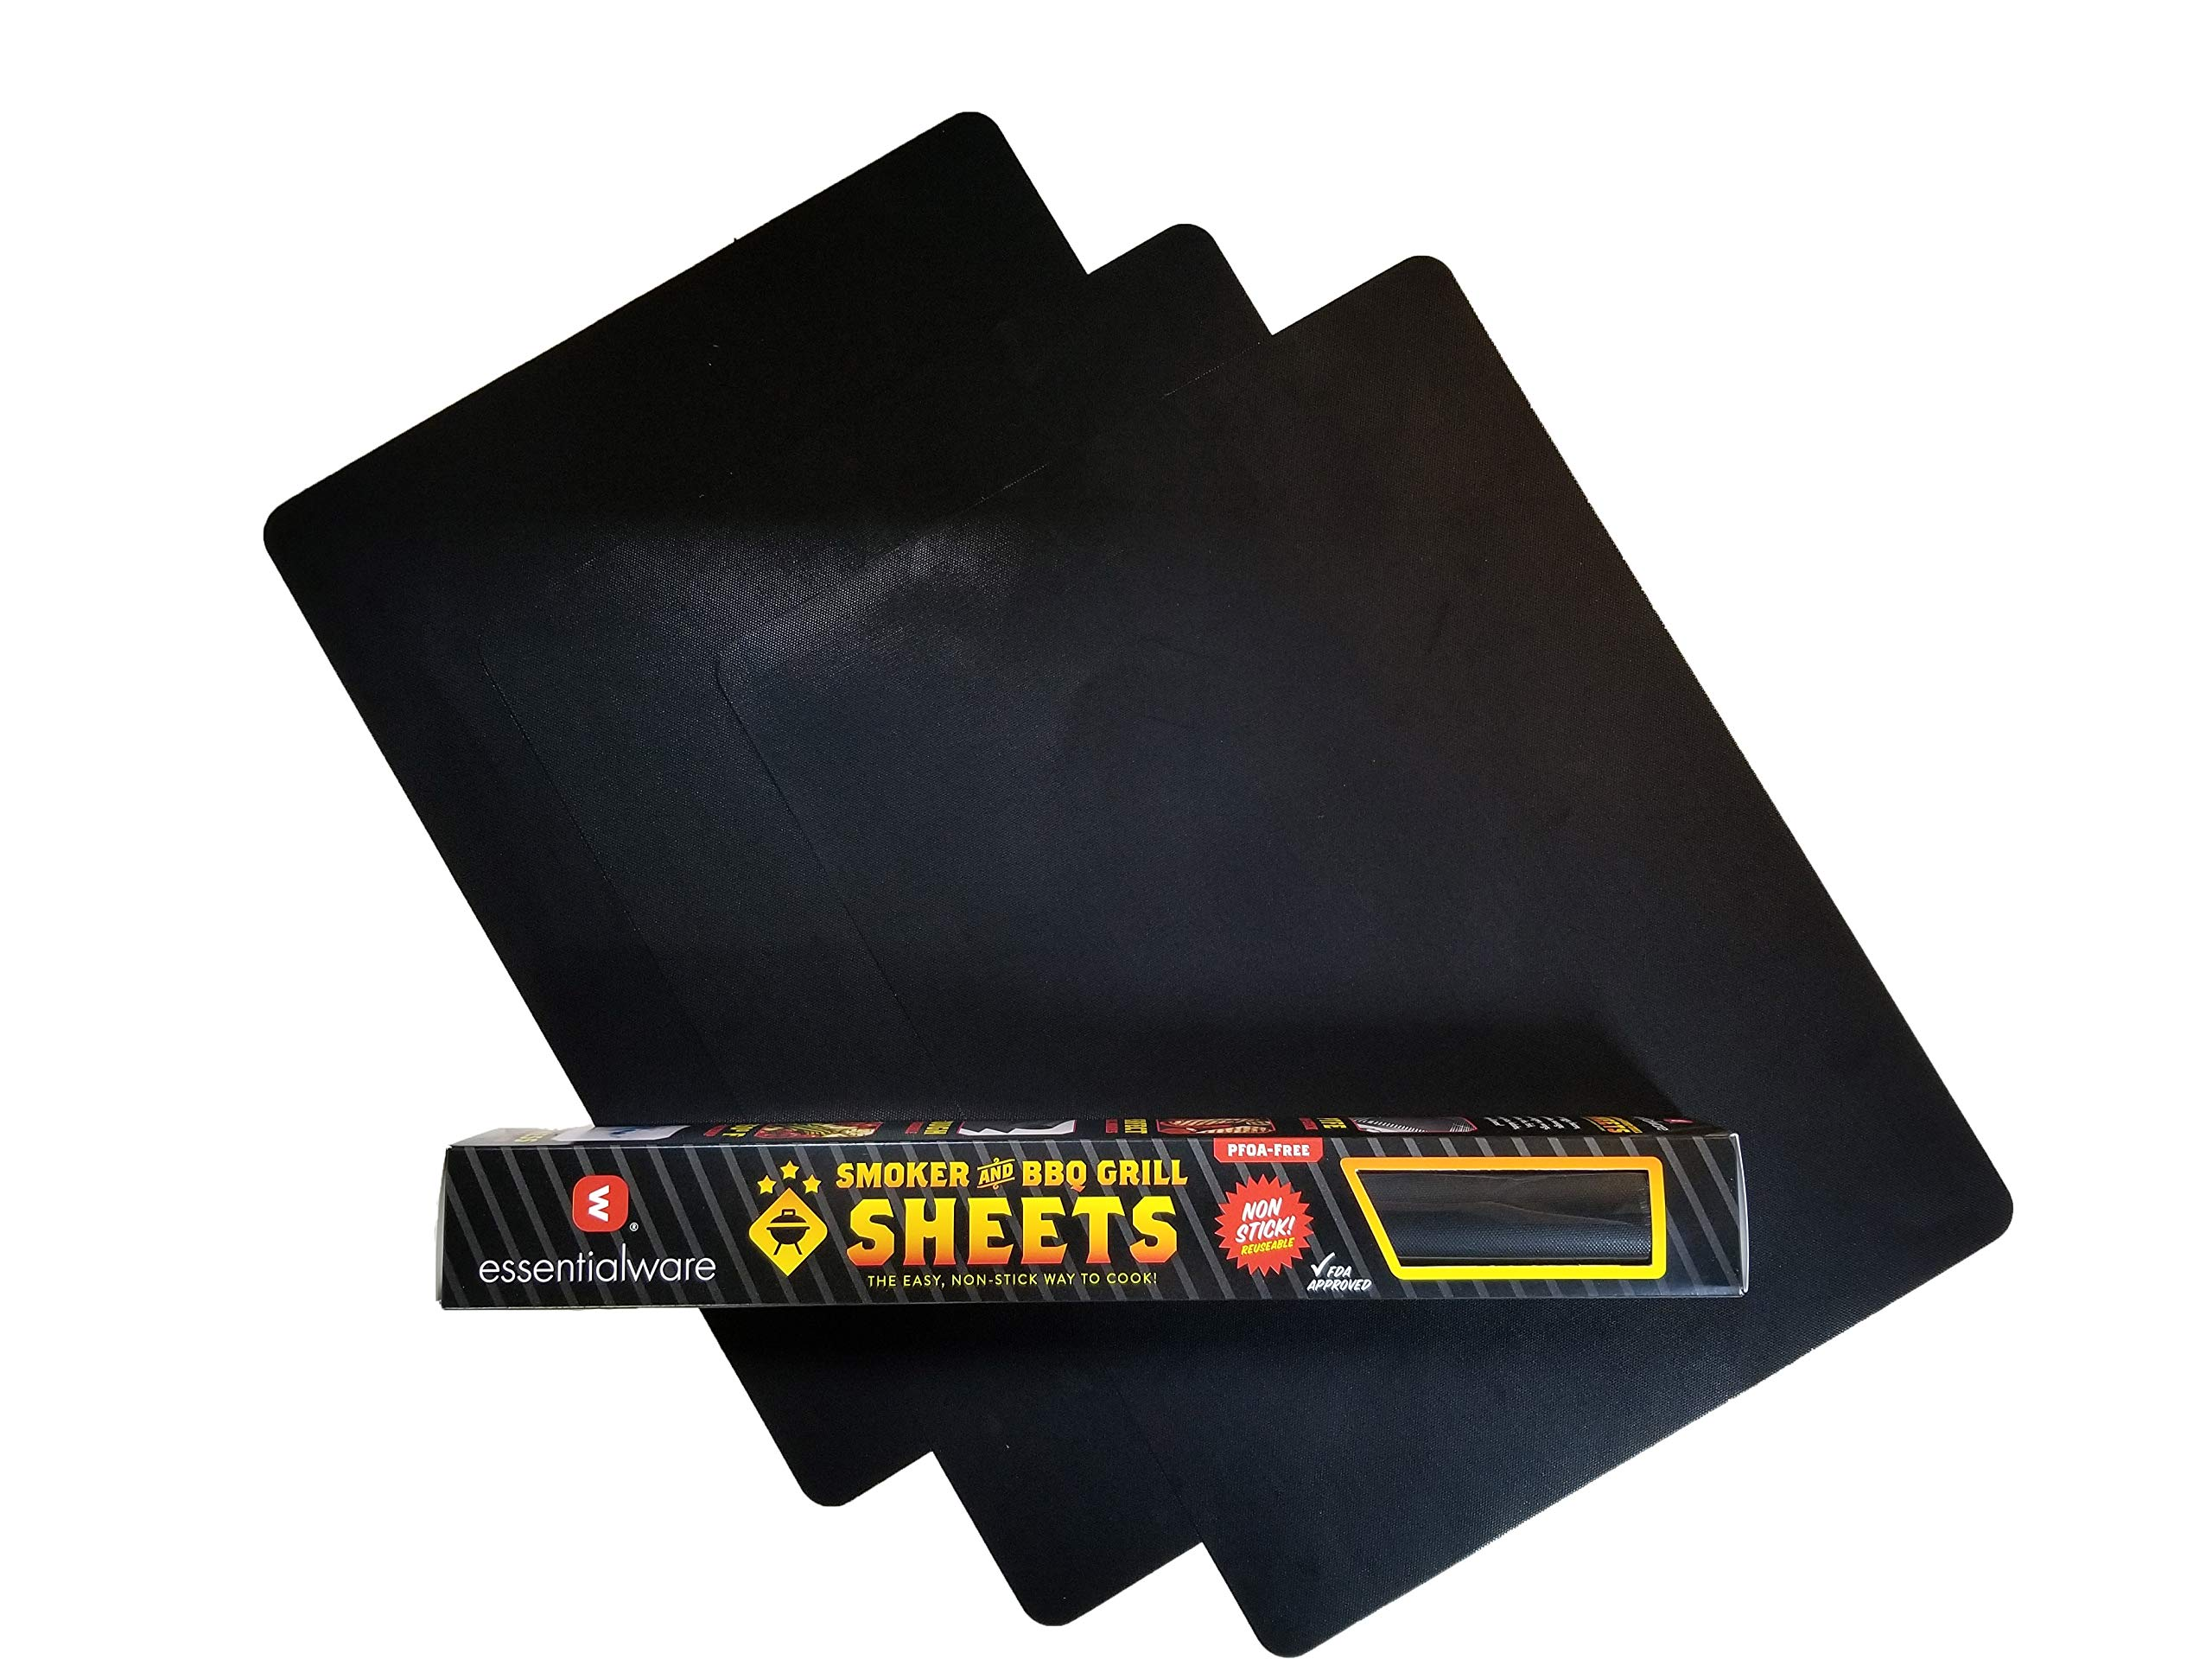 Essentialware 3 Pack PTFE (Teflon) Non-Stick BBQ Grill and Smoker Grill Sheets - 16'' x 12'' and 8 mil Thick